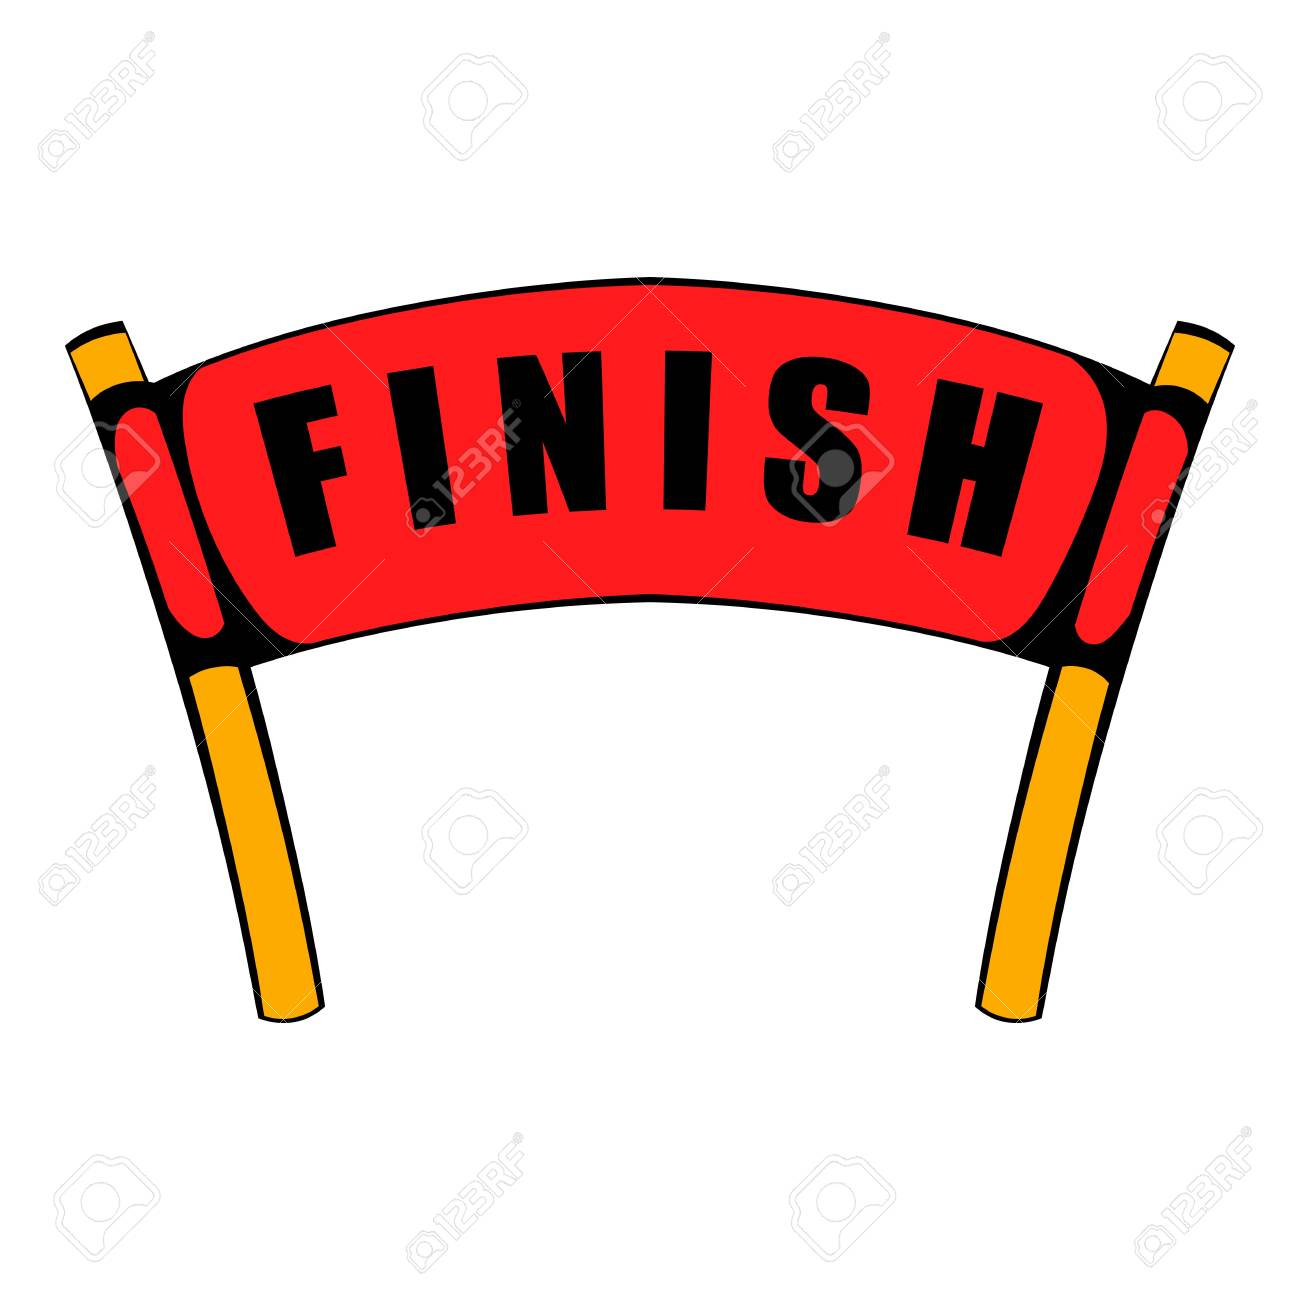 Red ribbon in finishing line icon, icon cartoon.